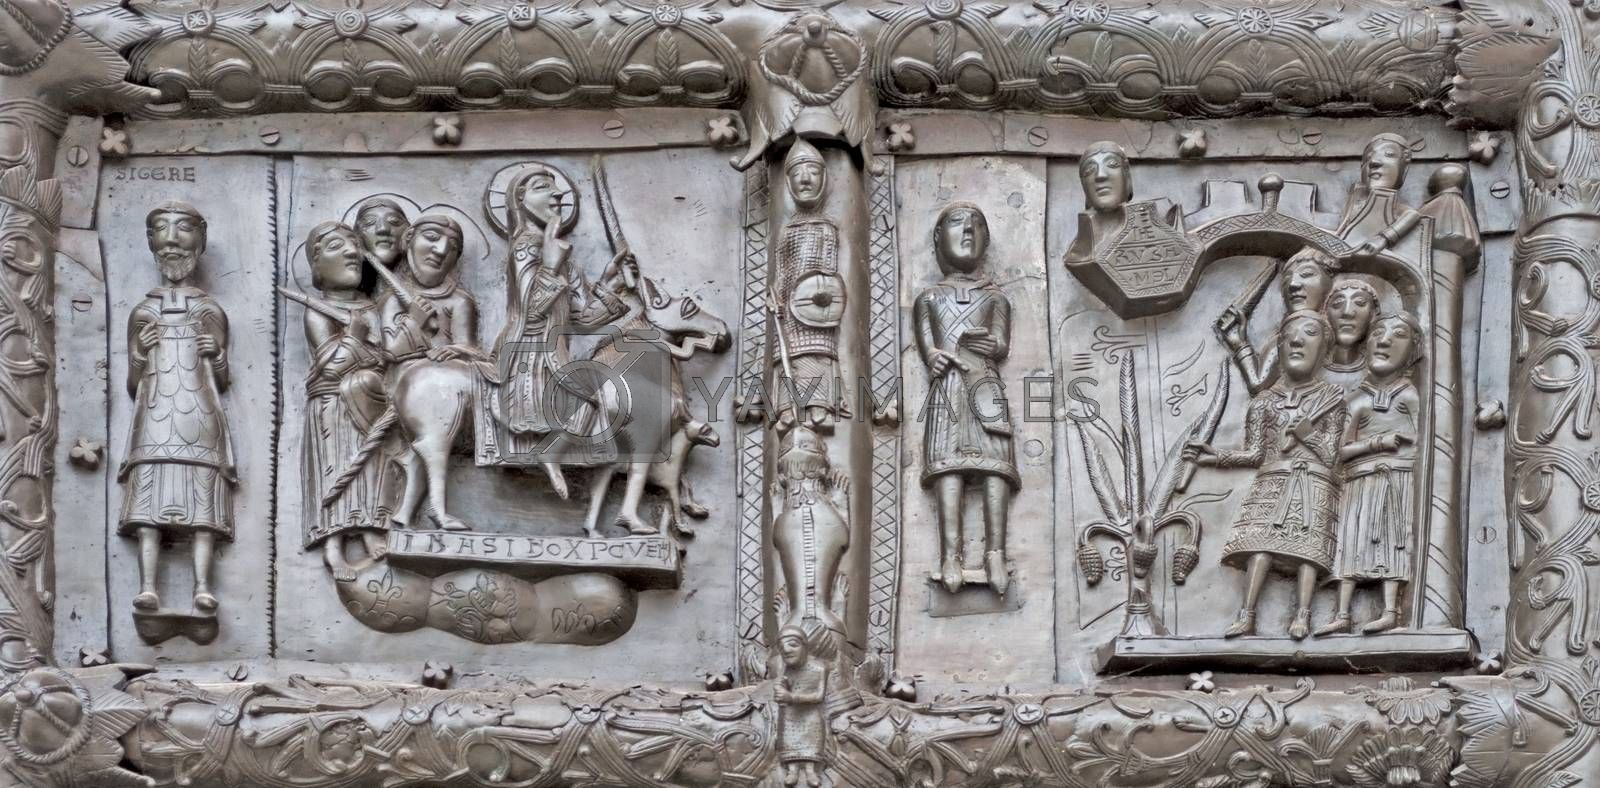 Ancient bronze gates of Magdeburg in Veliky Novgorod, Russia. Fragment of the bas-relief with Jesus Christ and scenes from Bible.